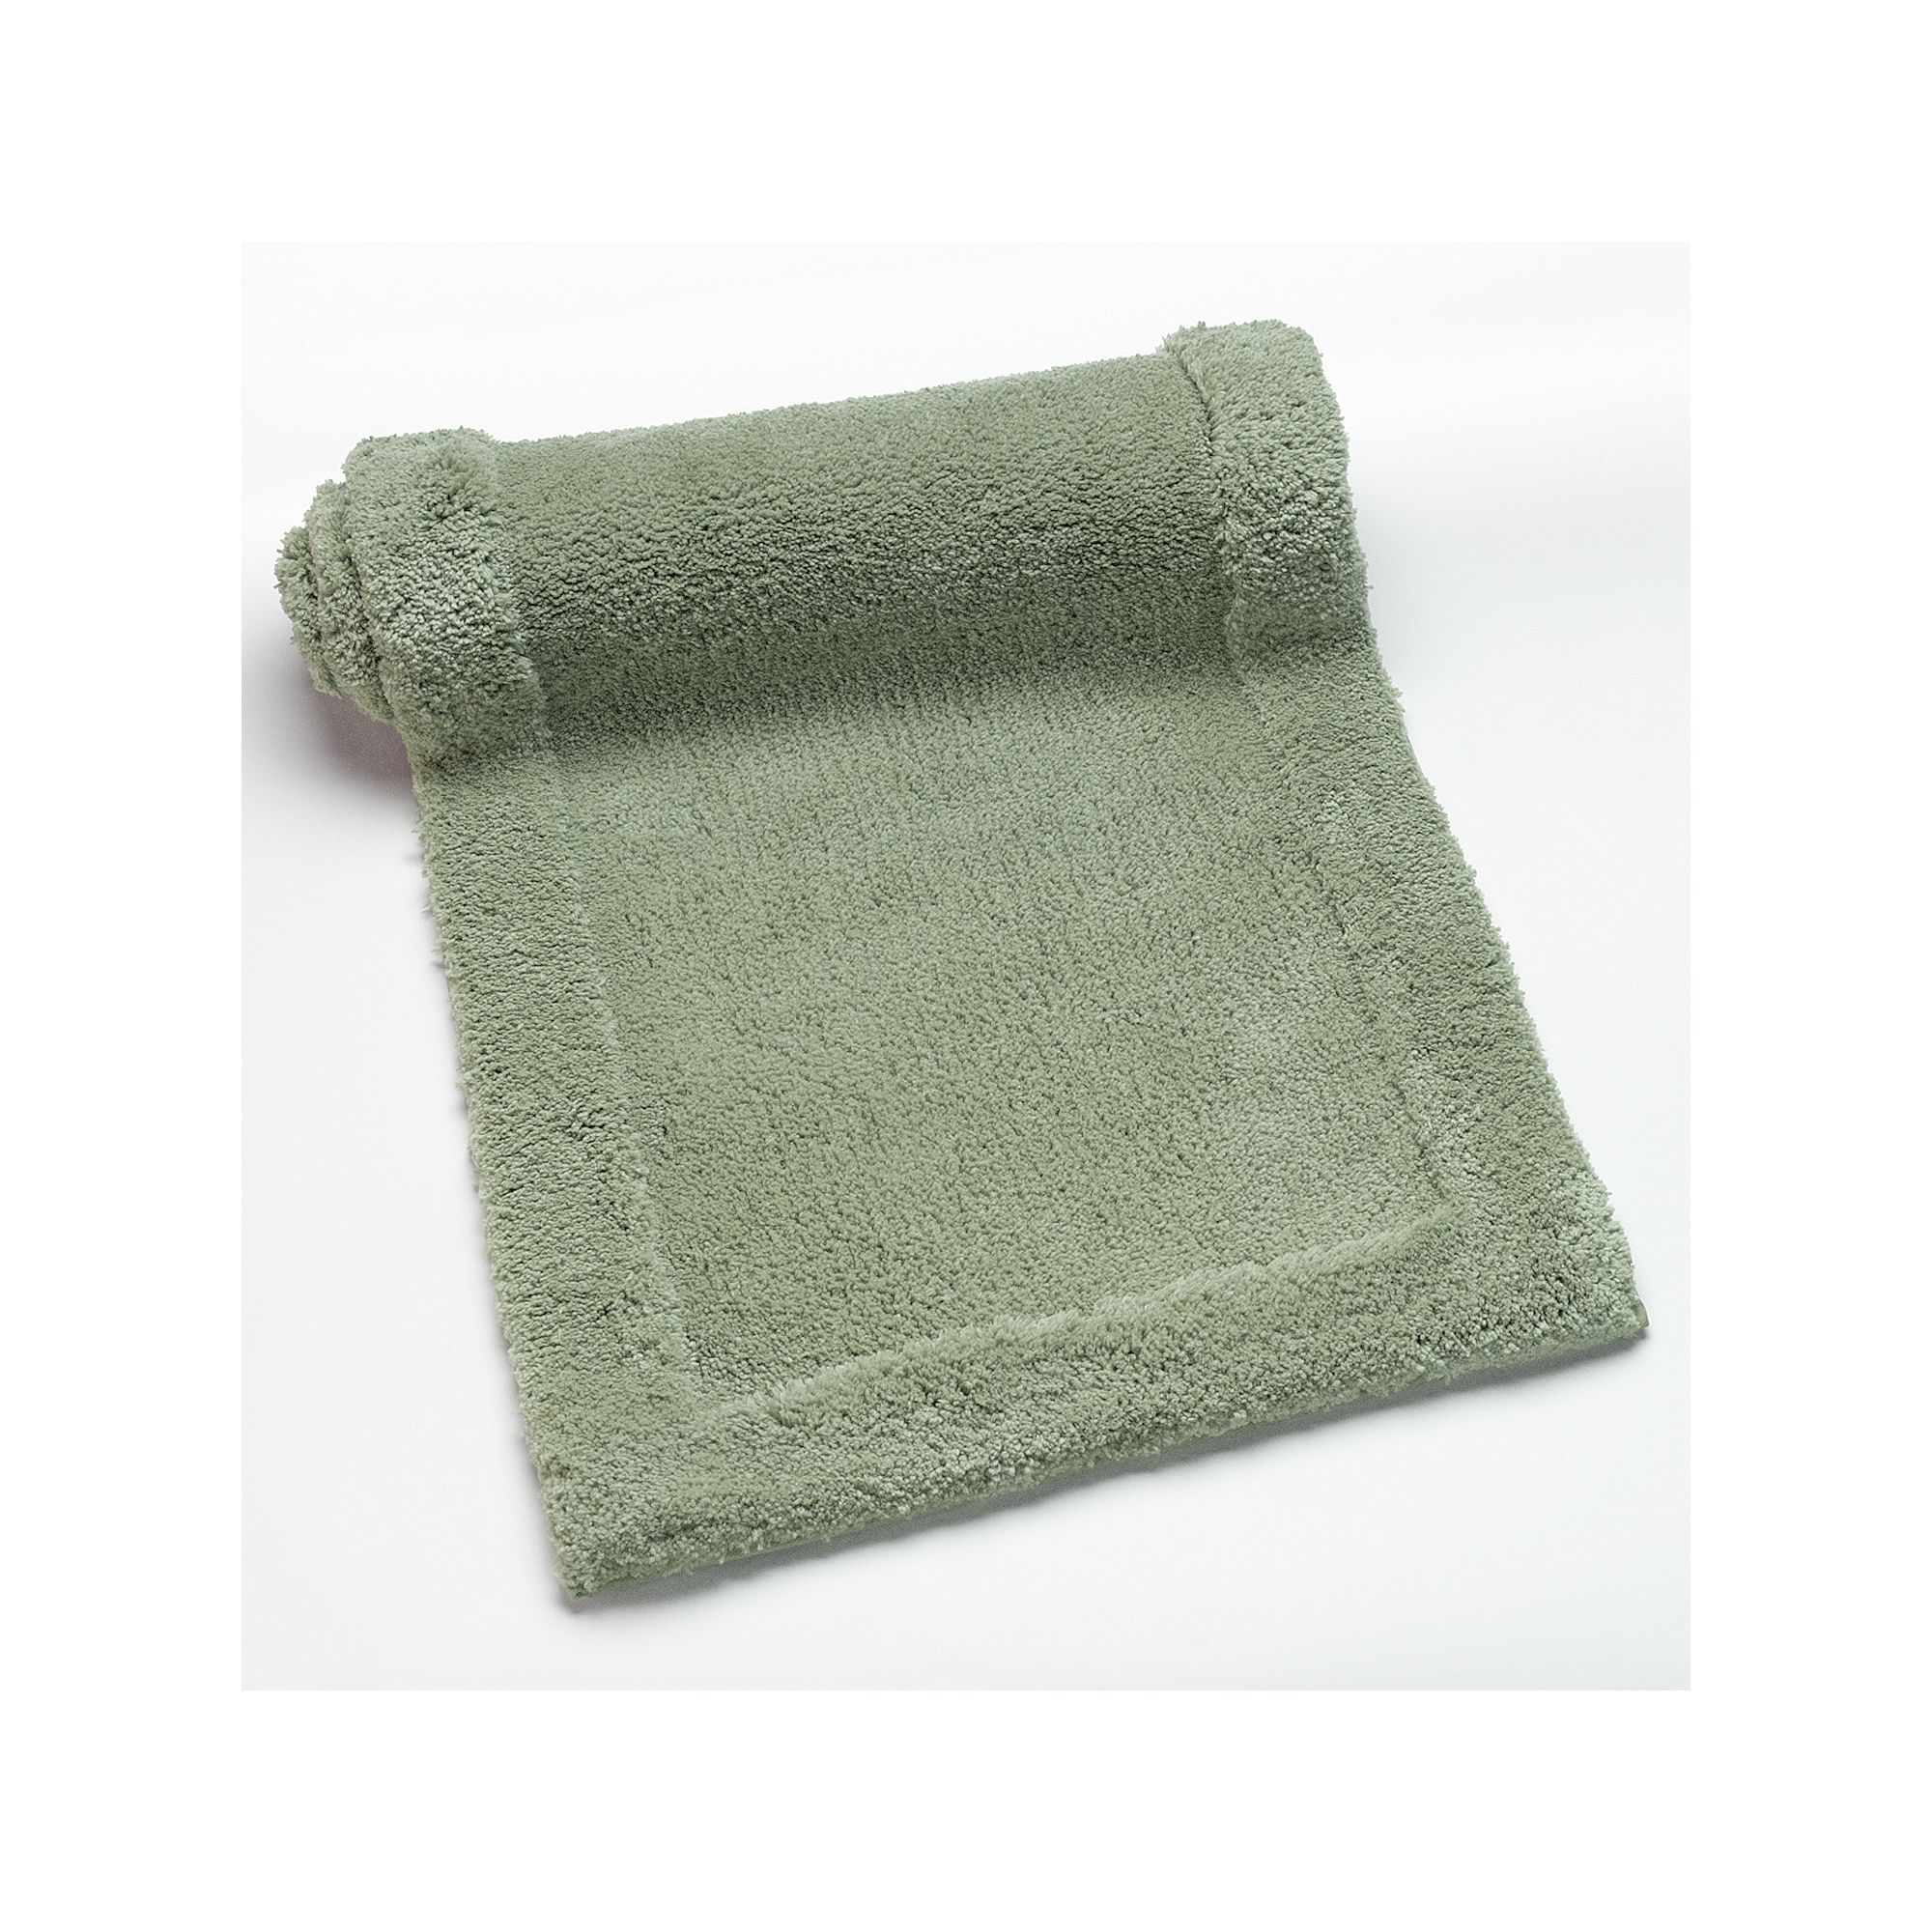 Plush Solid Bath Rug Runner 22 X 60 Green